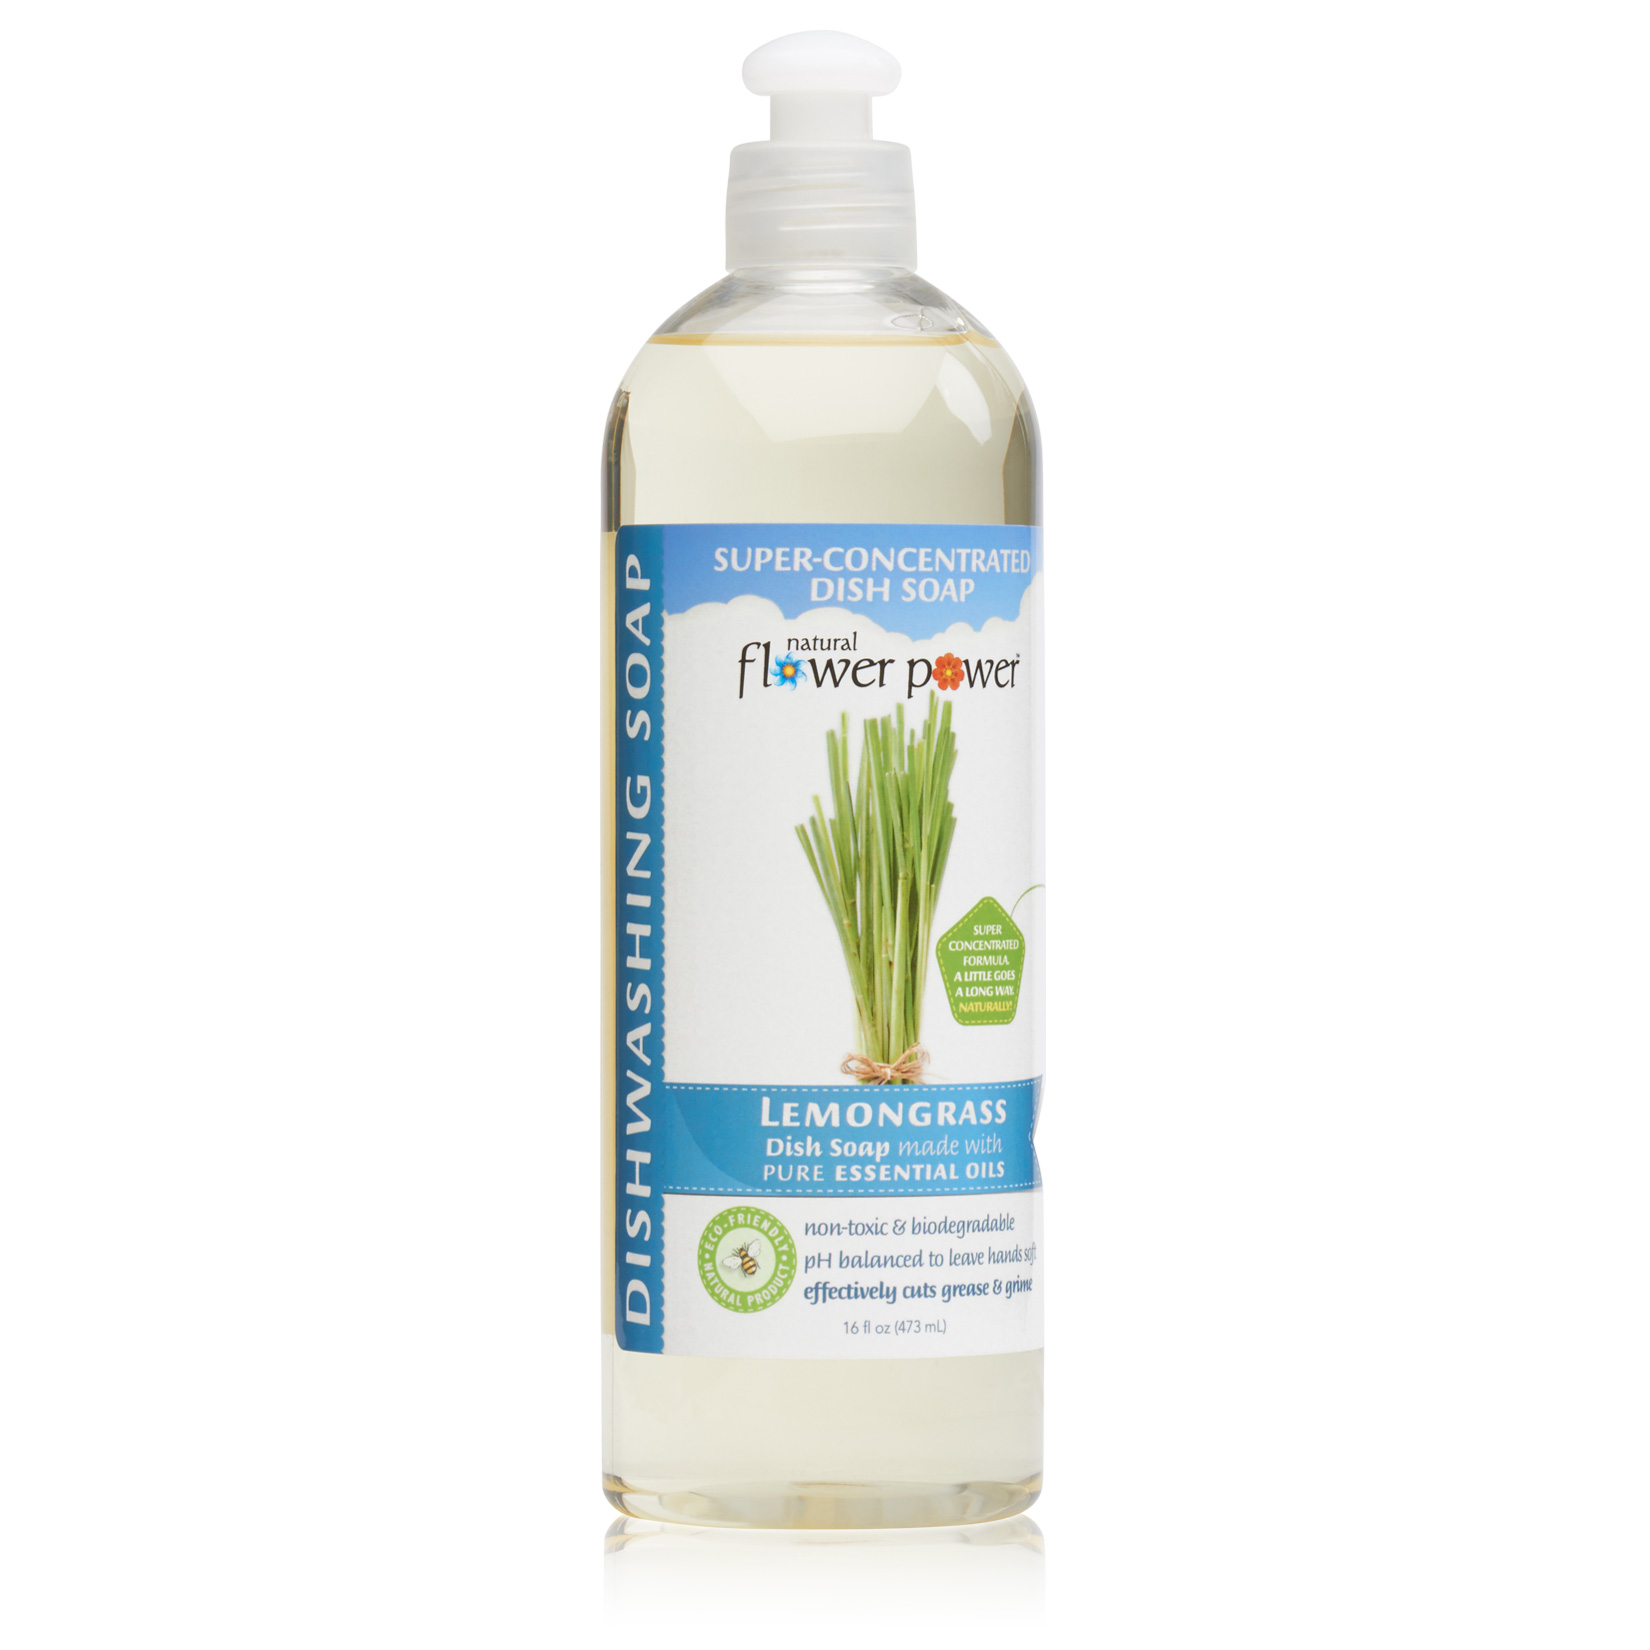 Natural Dish Soap Lemongrass – Profile